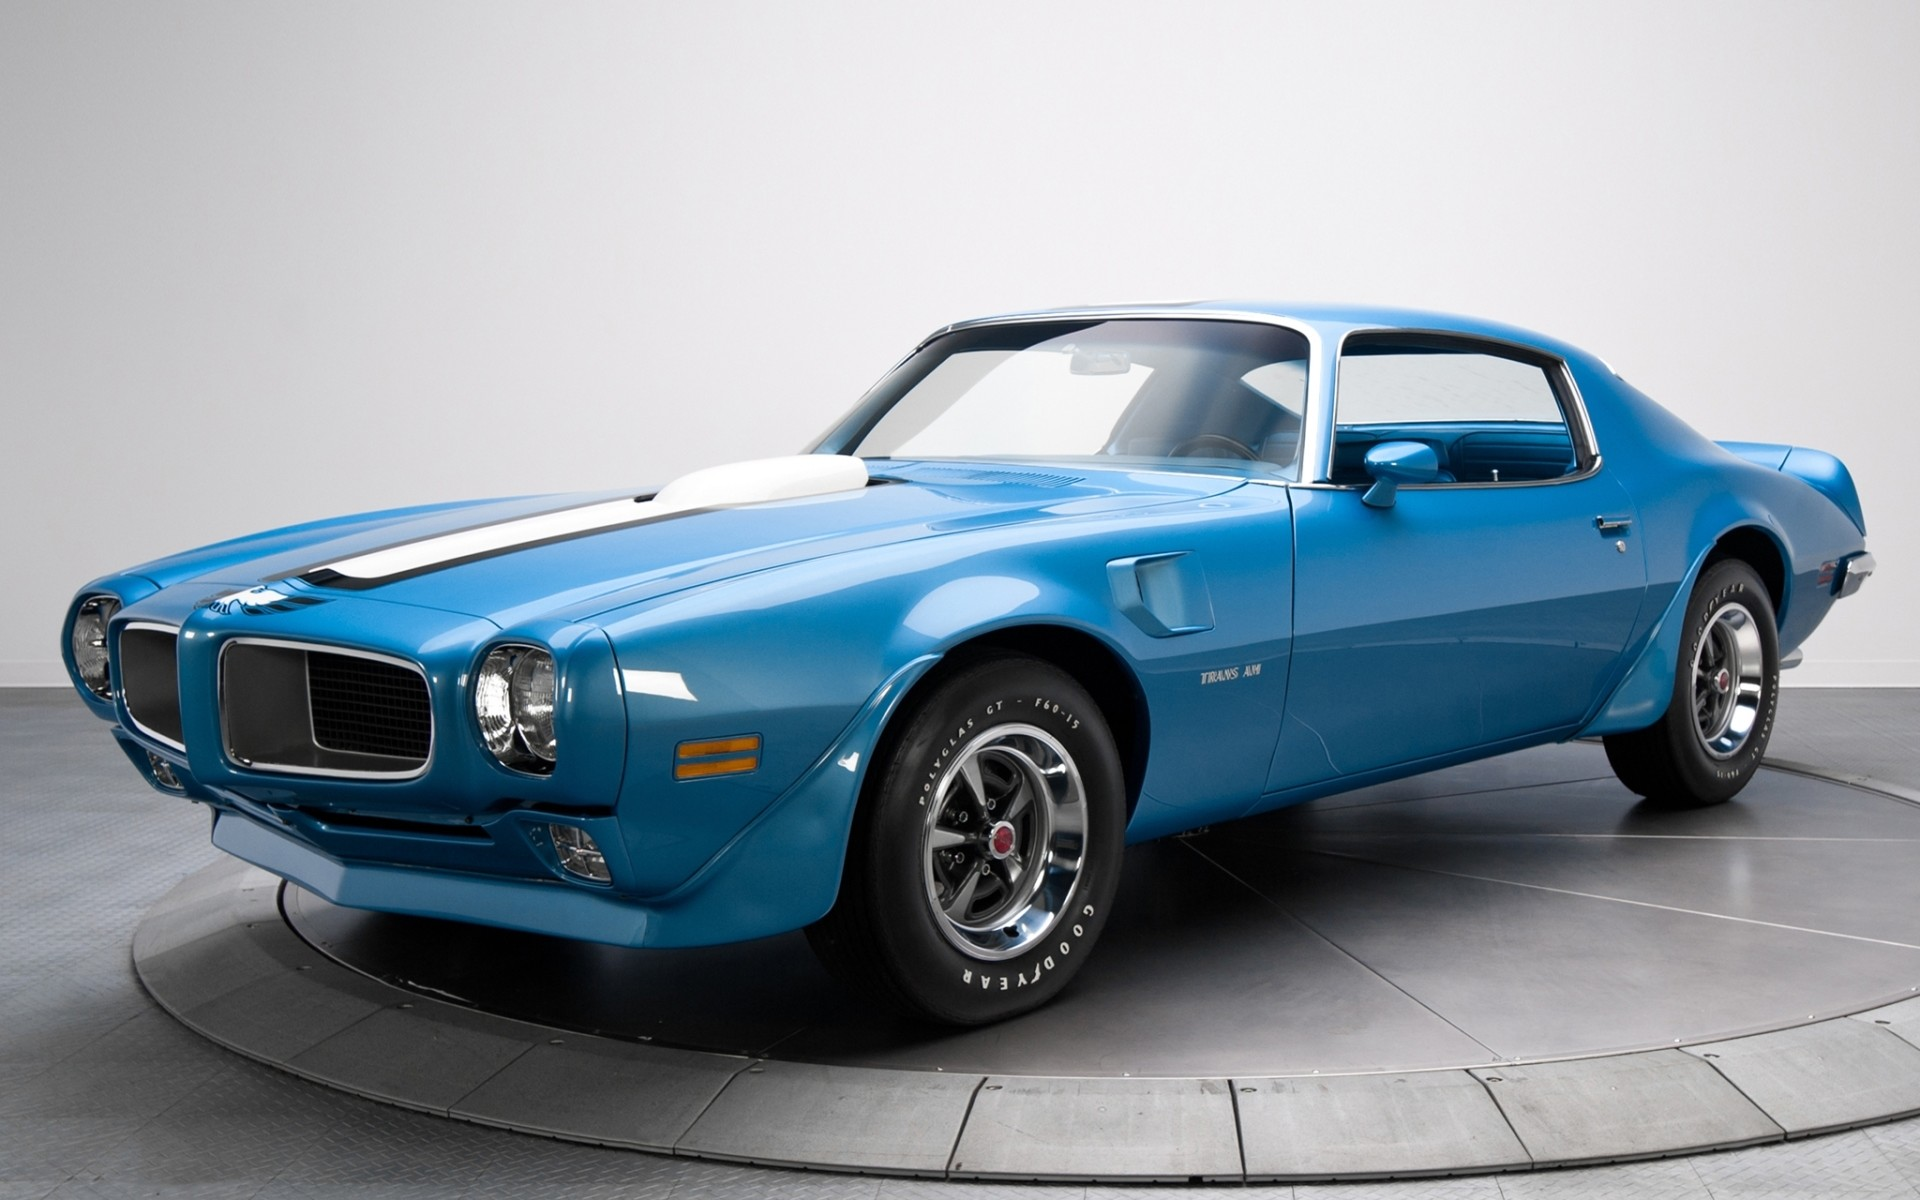 1920x1200 Pontiac Firebird Trans Am Muscle Car HD Wallpapers